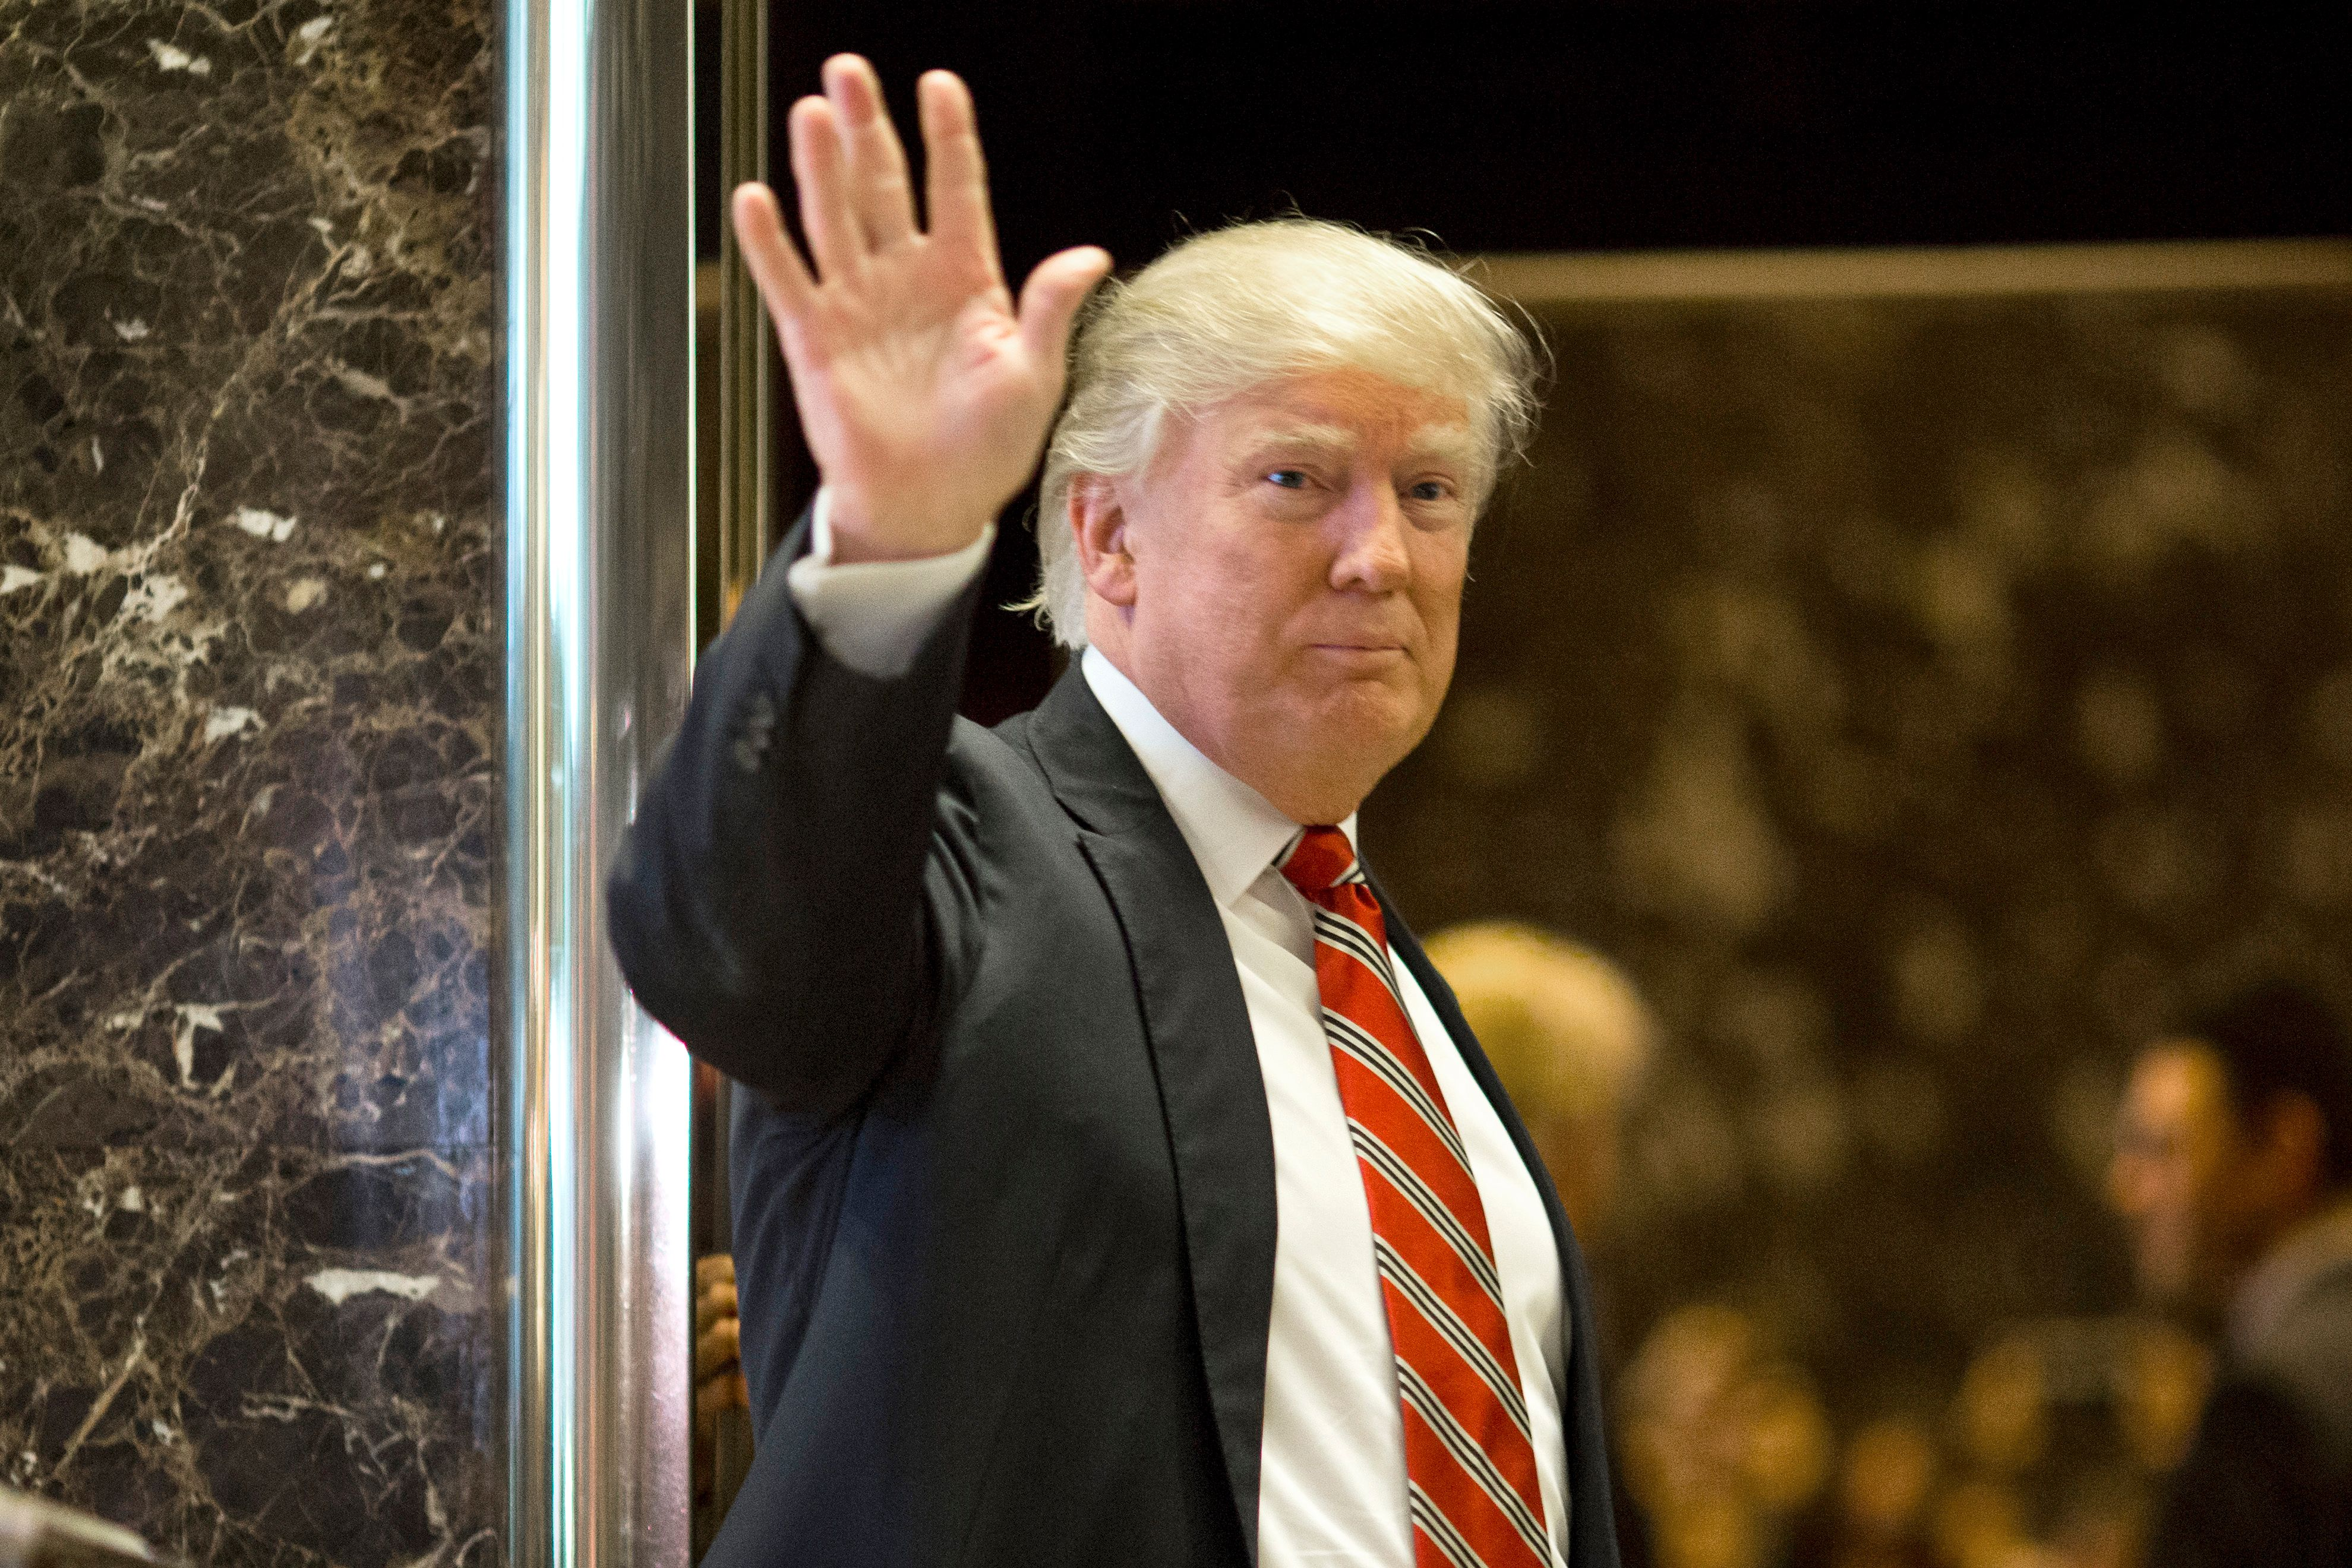 US President-elect Donald Trump waves toward the media after meeting Martin Luther King III at Trump Tower in New York City on January 16, 2017.